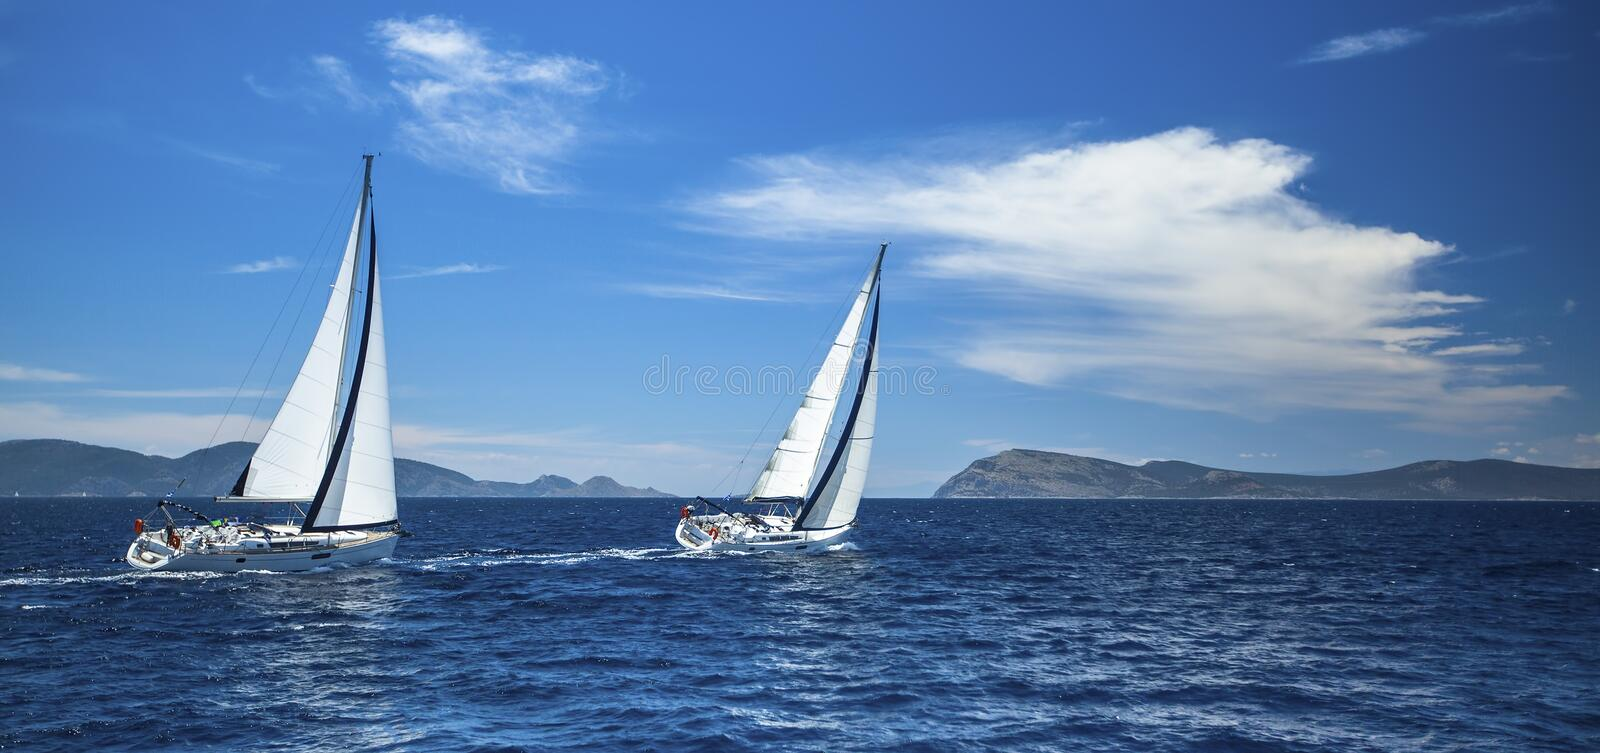 Panorama of the yacht race in the open sea. Sailing. Luxury yachts stock images